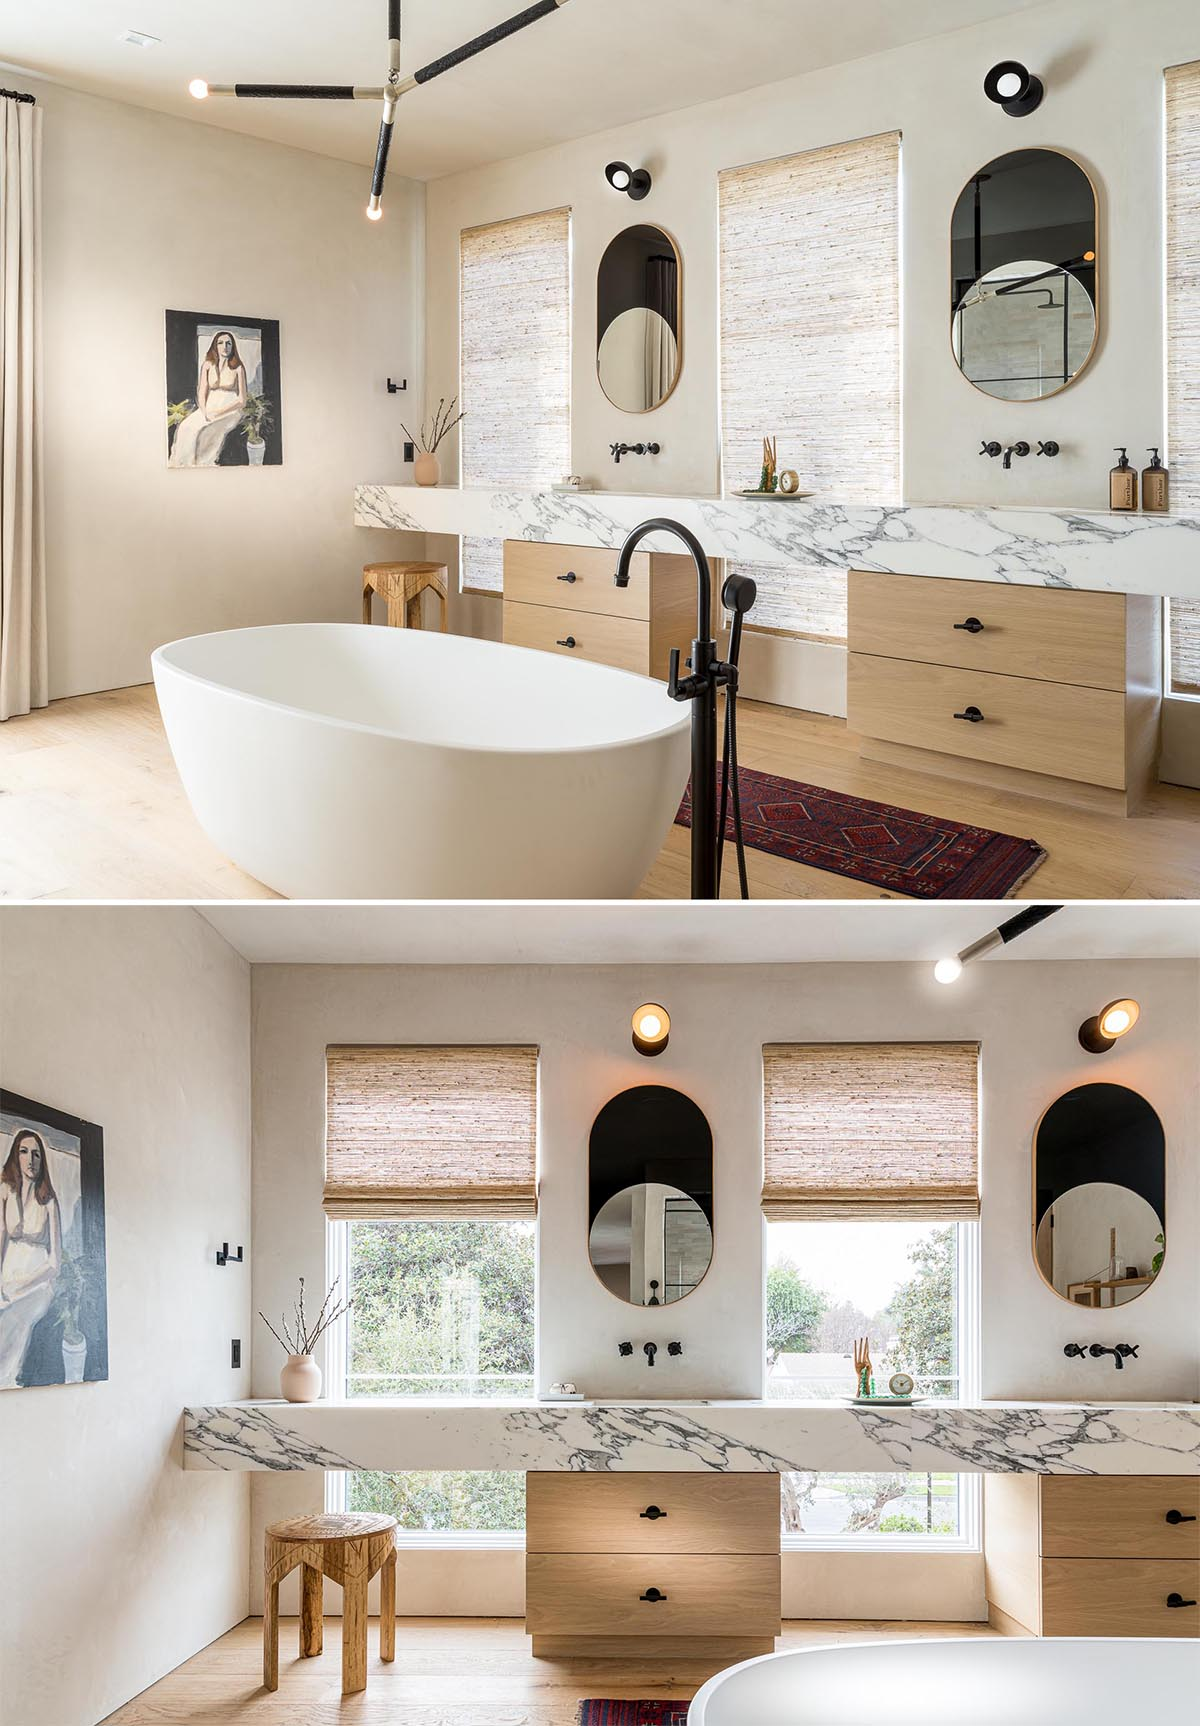 This modern and expansive en-suite bathroom has a white freestanding soaking tub, a glass-enclosed shower for two, and a marble double vanity.